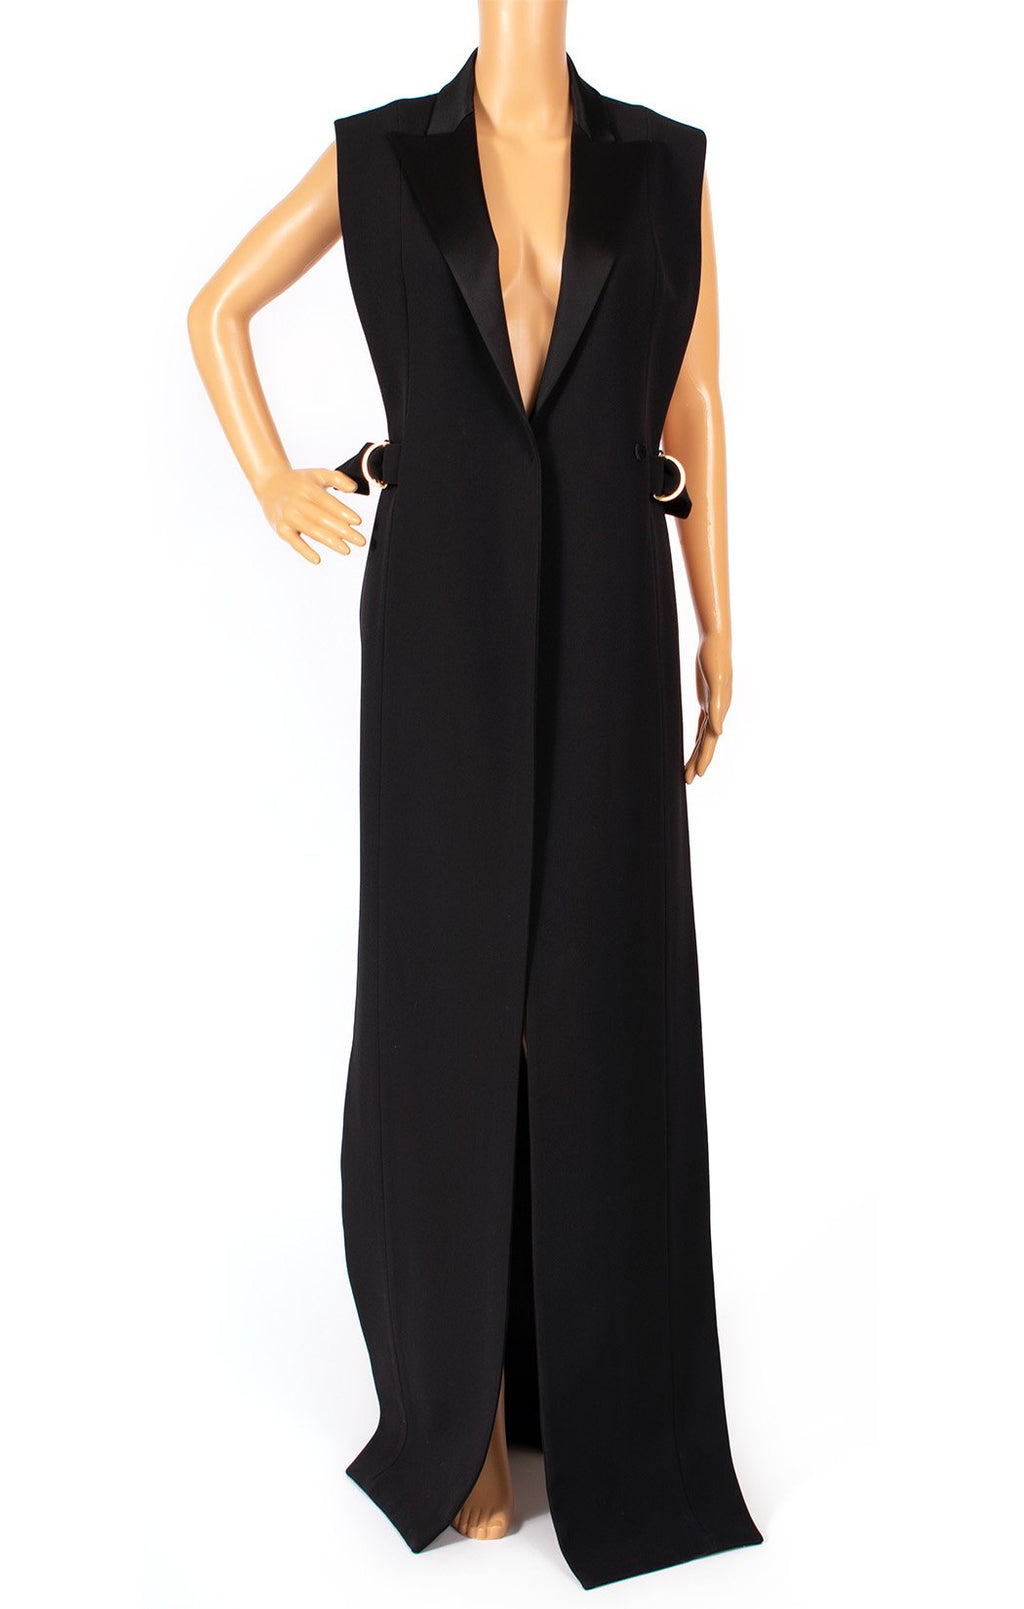 Front view of BALMAIN Long vest (floor length) Size: FR 36 (comparable to US 4)